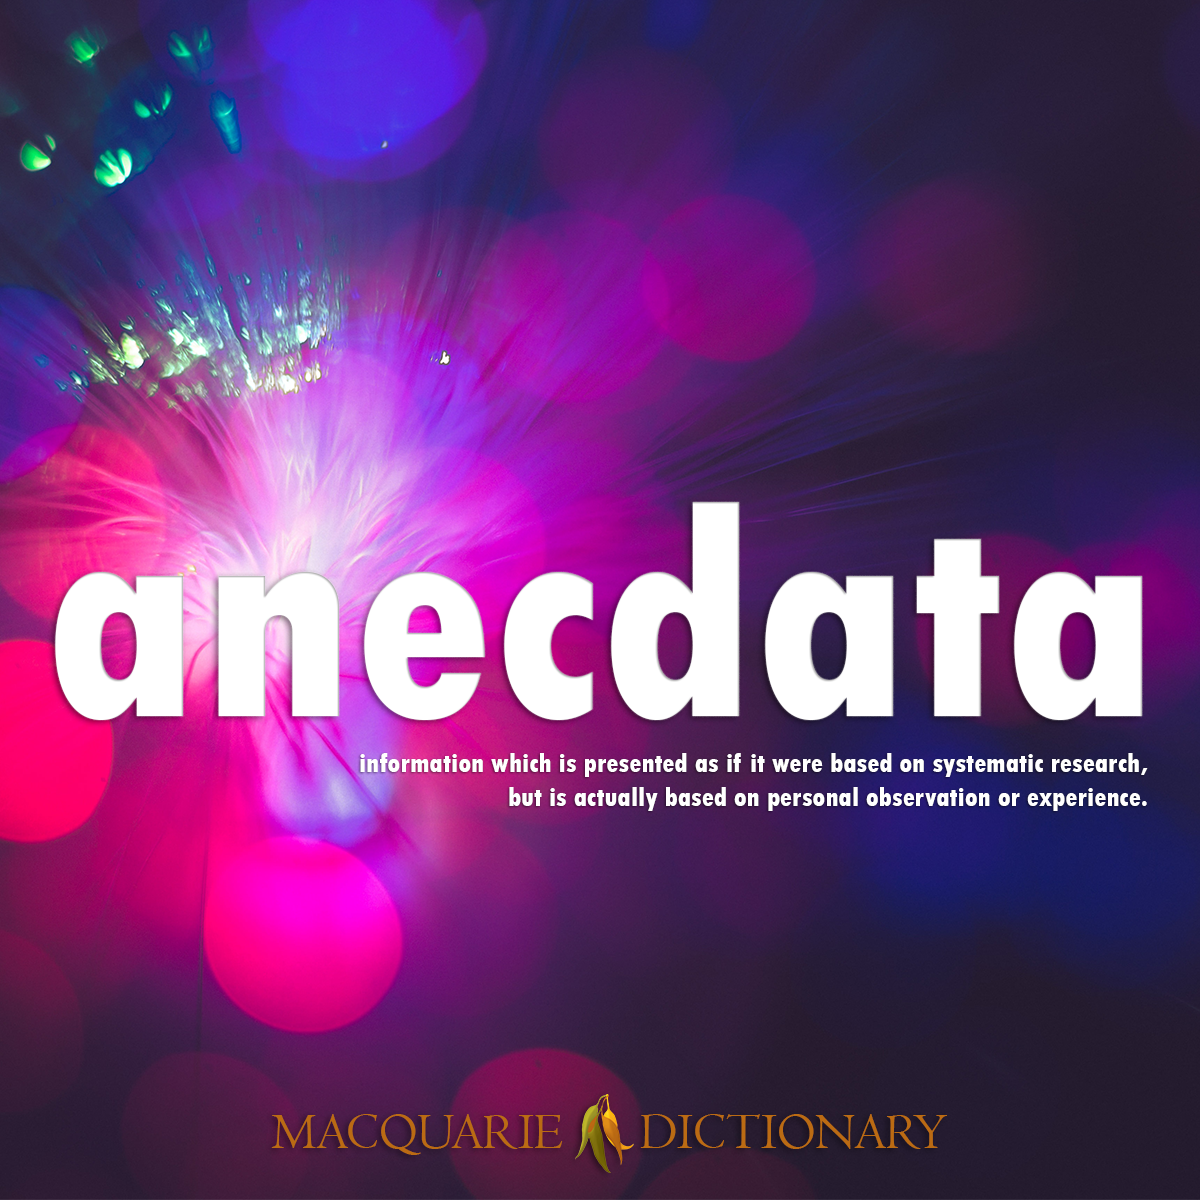 Image of Macquarie Dictionary Word of the Year - anecdata - information which is presented as if it were based on systematic research, but is actually based on personal observation or experience.